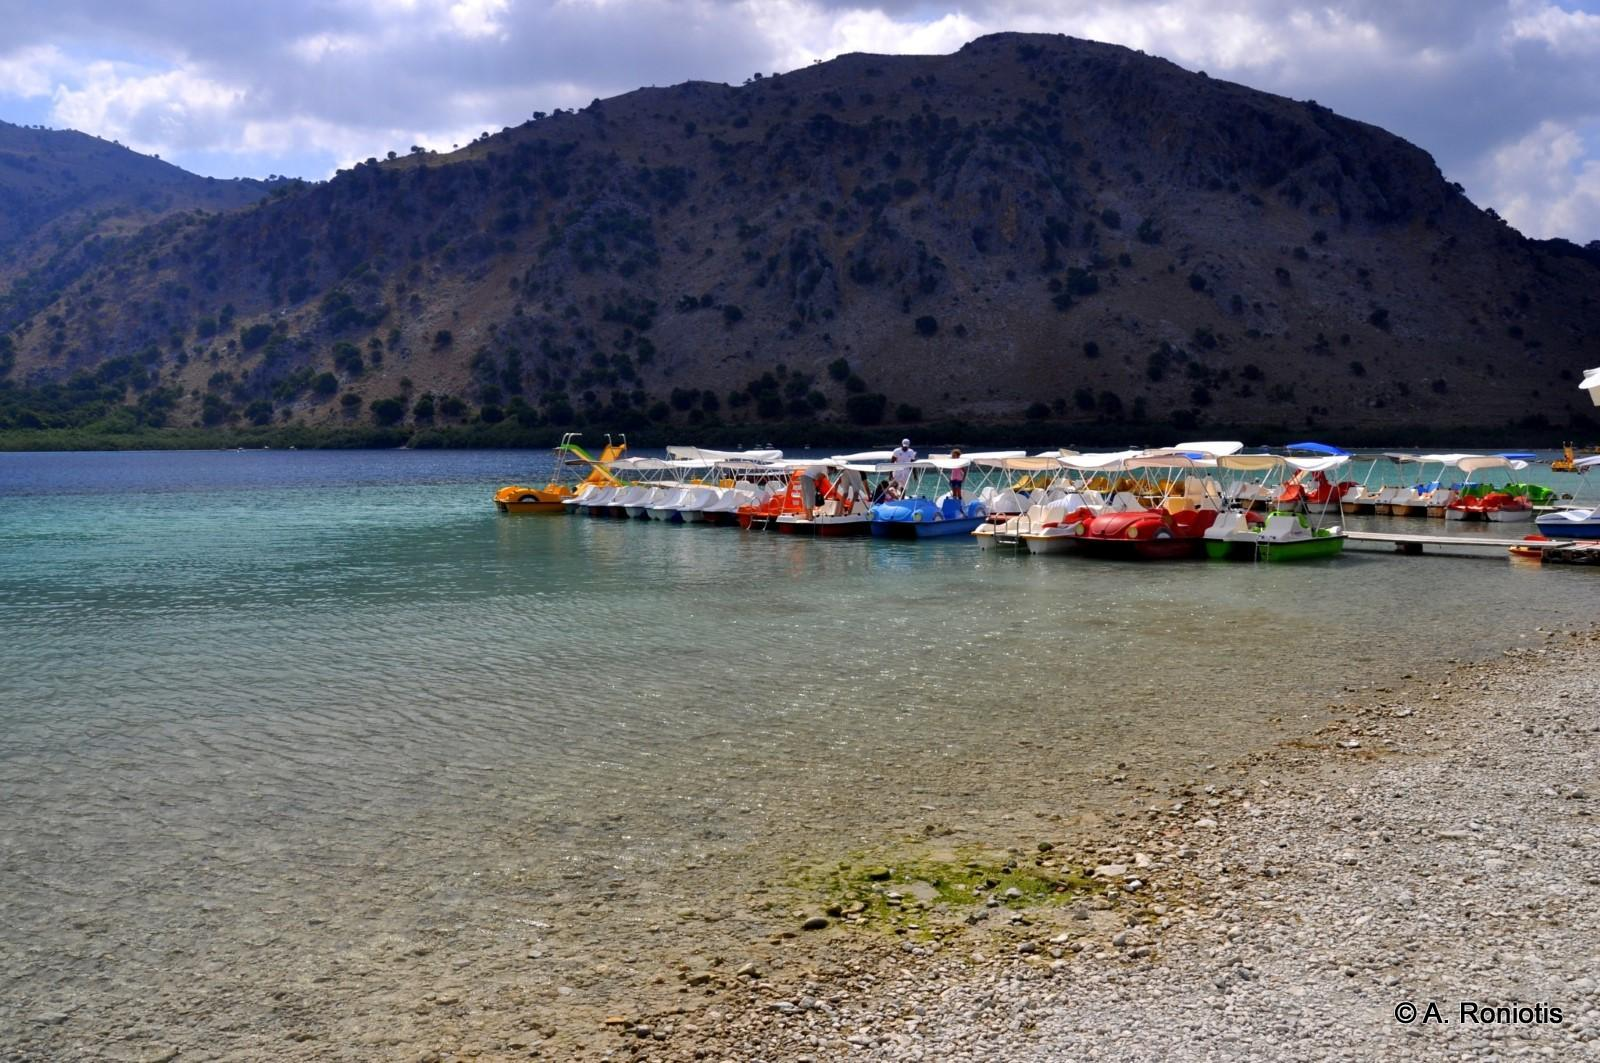 Pedal boats in Lake Kourna